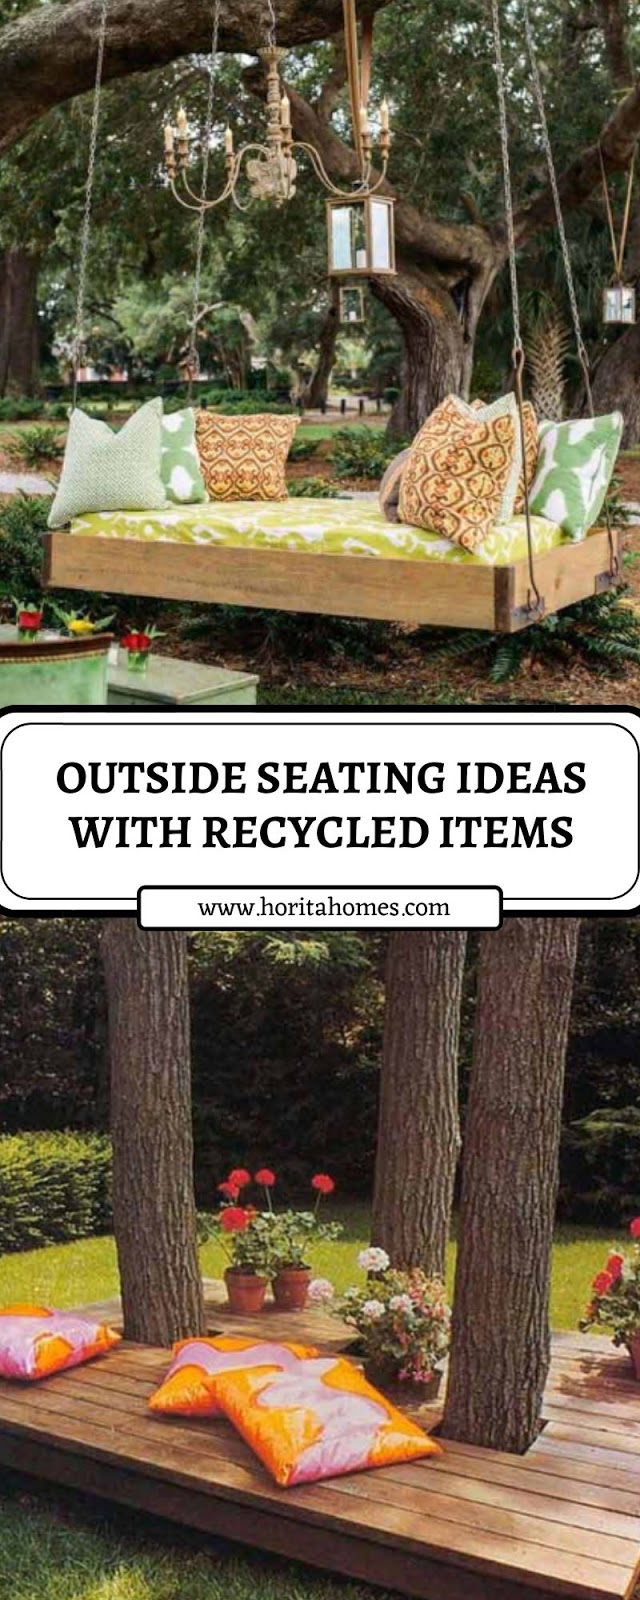 OUTSIDE SEATING IDEAS WITH RECYCLED ITEMS